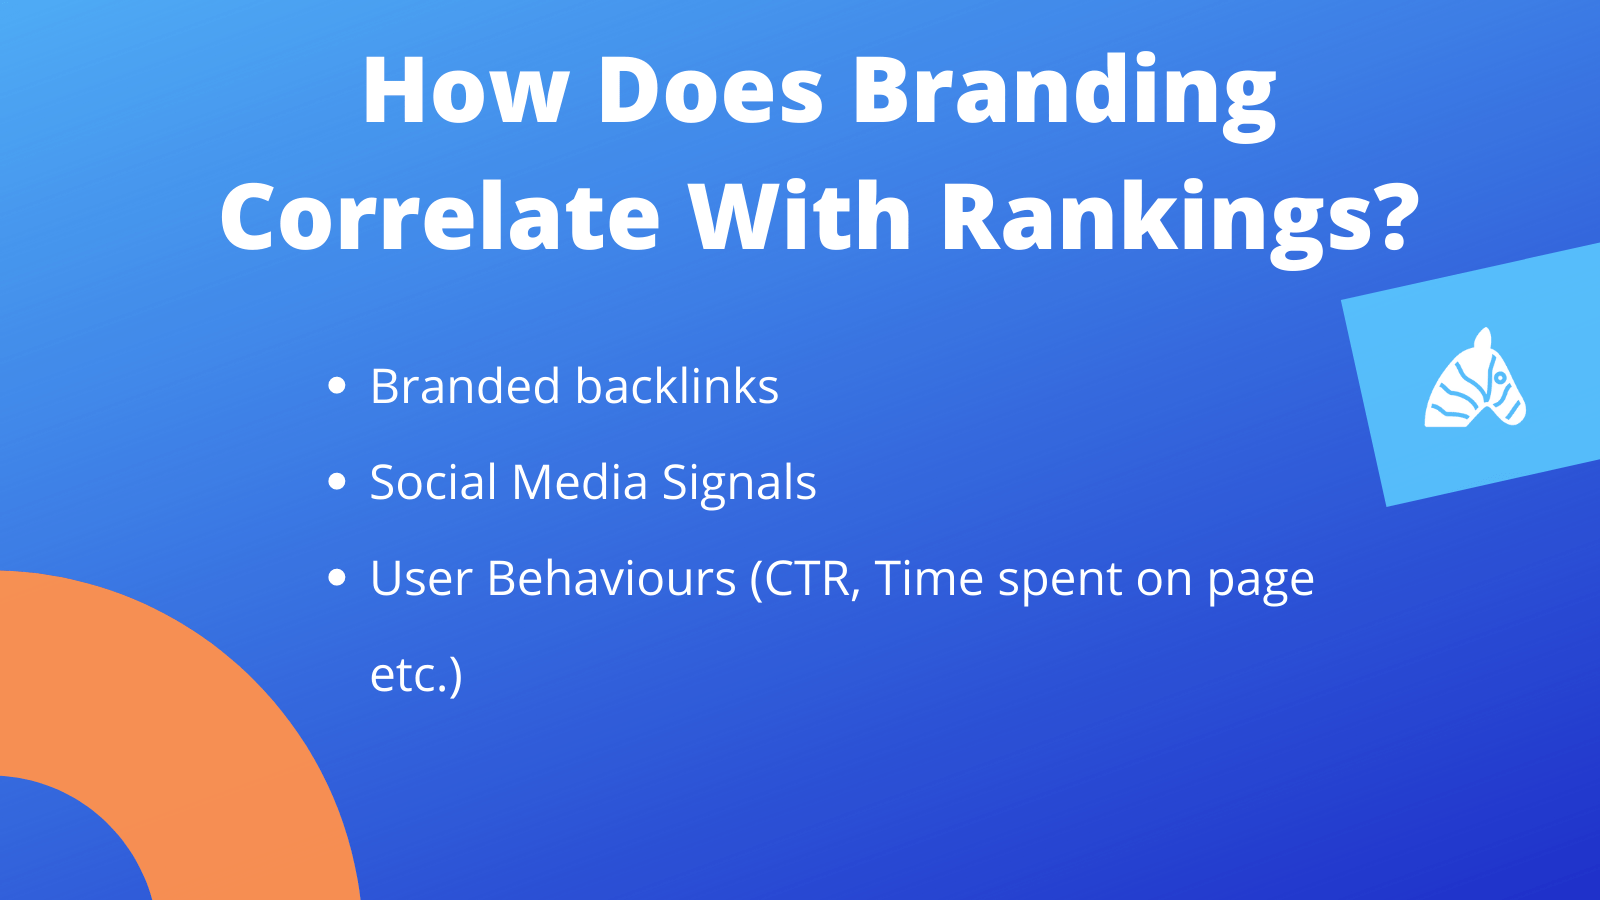 how do SEO rankings correlate with branding